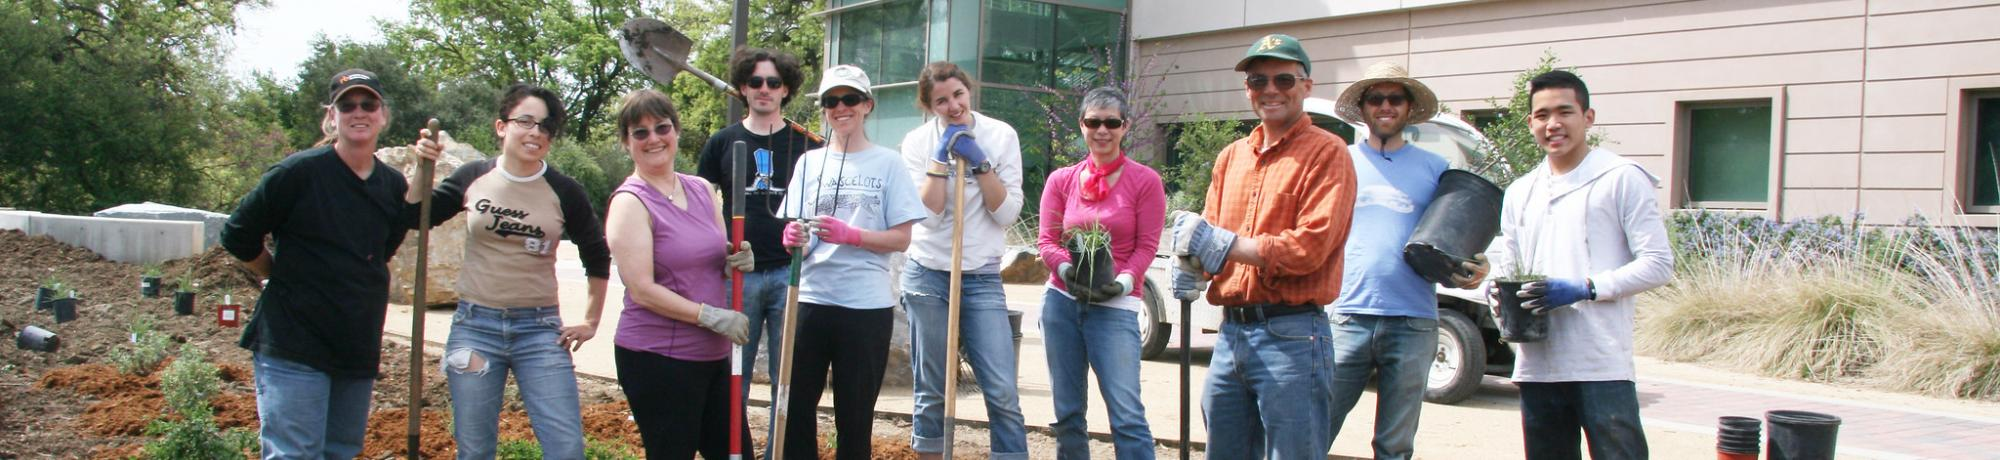 Image of staff, students and volunteers in the UC Davis California Rock Garden.